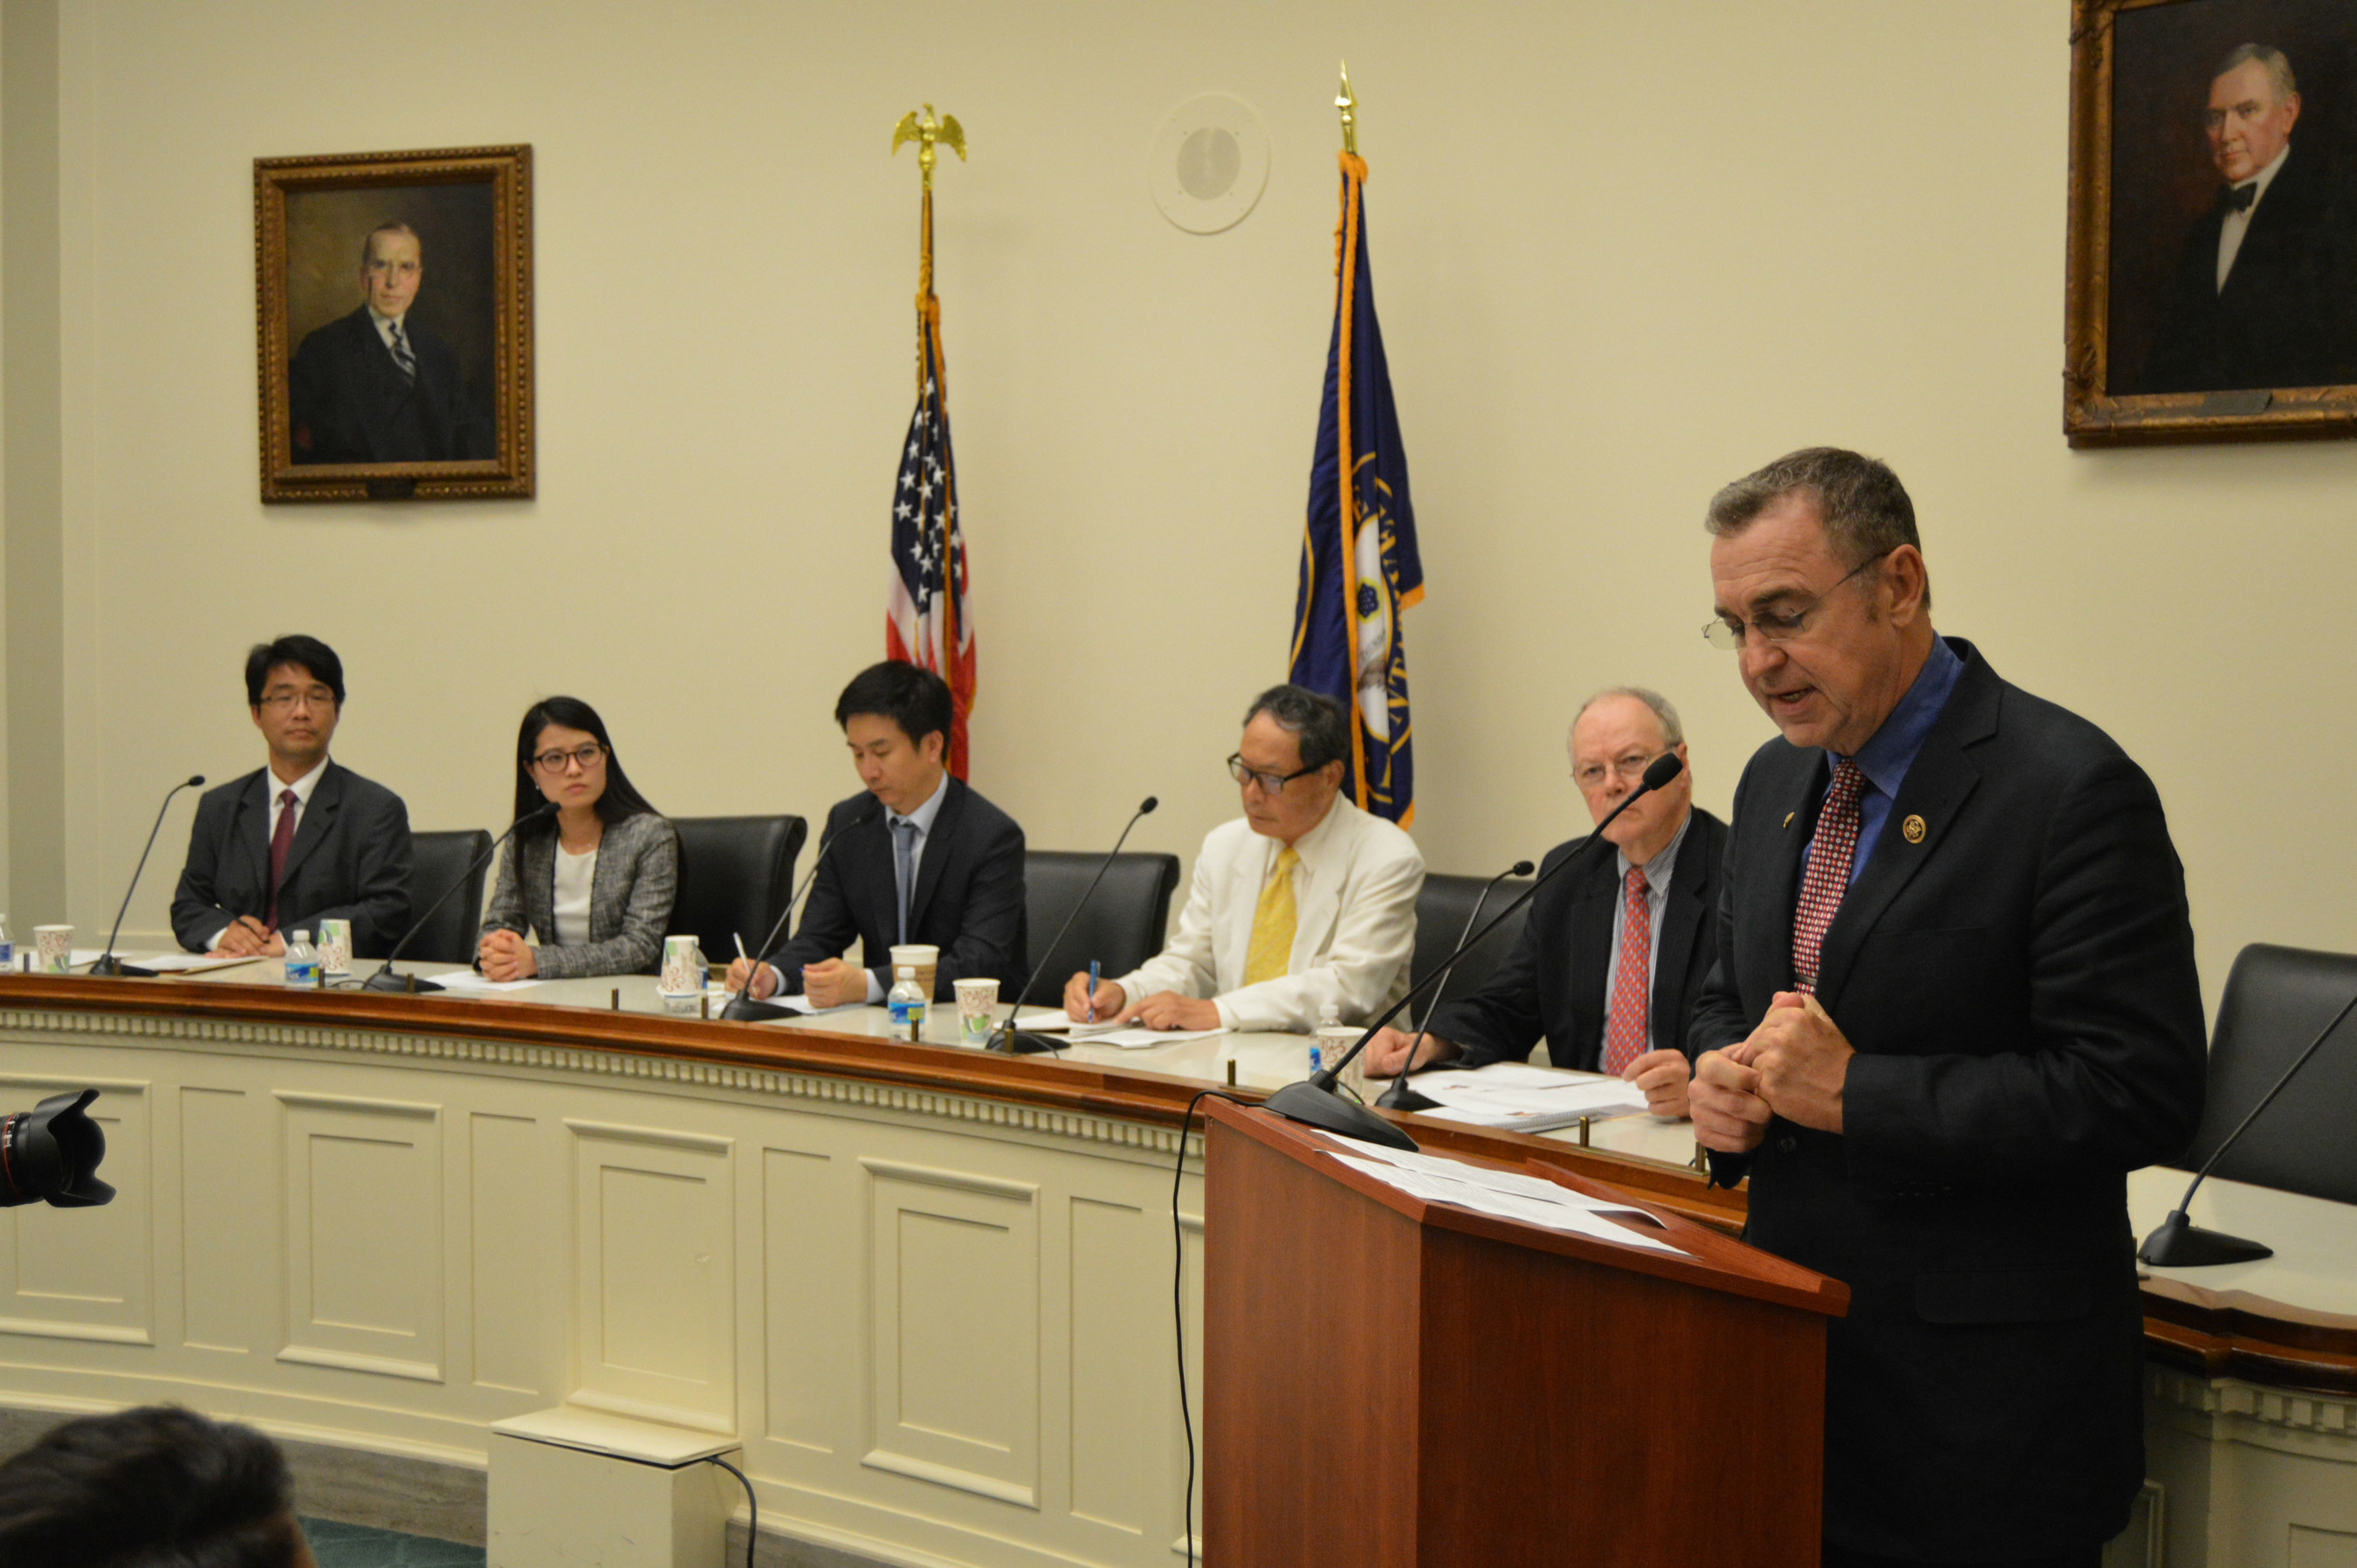 """U.S. Rep. Matt Salmon (R-AZ), chairman of the House Asia and the Pacific Subcommittee and congressional co-host of the briefing, welcomes panelists who spoke on human rights issues in North Korea, the role of information technology, and support for unification of the Korean Peninsula. From left, Mr. Yon-ho Kim, Senior Researcher, US-Korea Institute at SAIS, Ms. Grace Jo, North Korean Defector and Vice President of NKinUSA, Mr. Cheol Hwan Kang, North Korean Defector, Co-President of Action for Korea United, and Author of """"Aquariums of Pyongyang,"""" Mr. Tong Kim, former SAIS professor, and Mr. Michael Marshall, Editor Emeritus of UPI and Senior Research Advisor at Global Peace Foundation."""